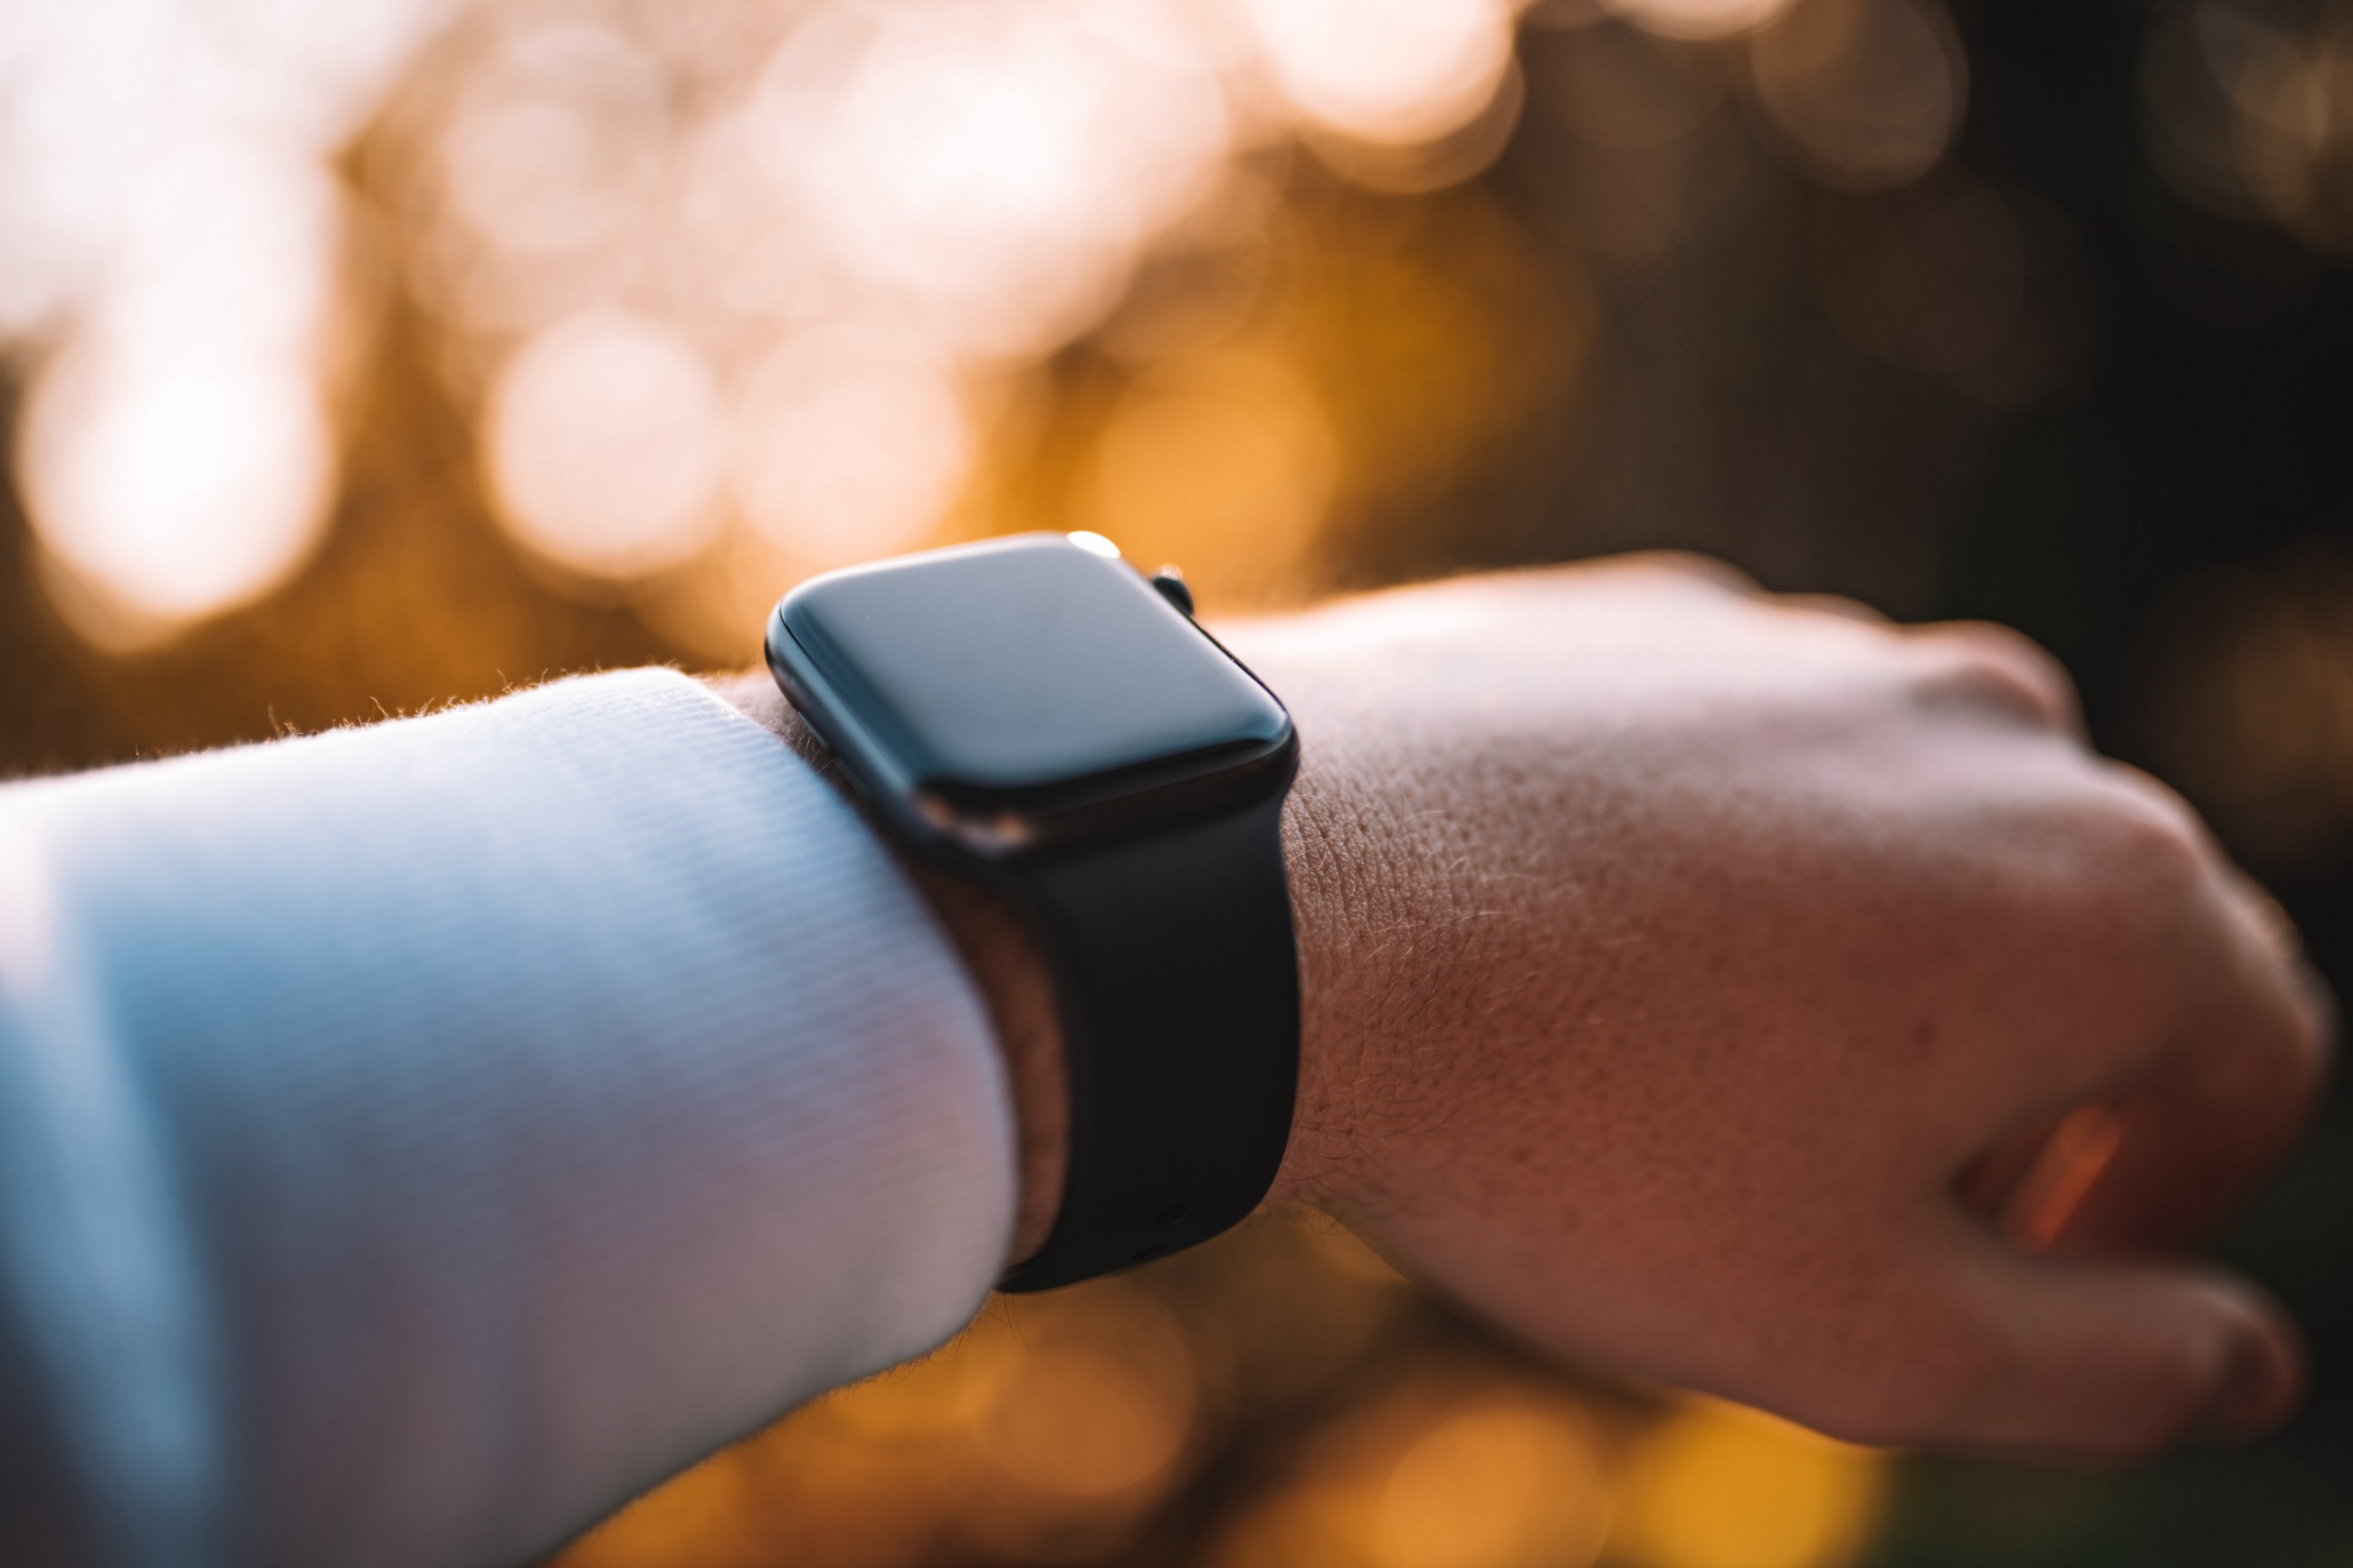 3 Ways the Apple Watch Improved My Health